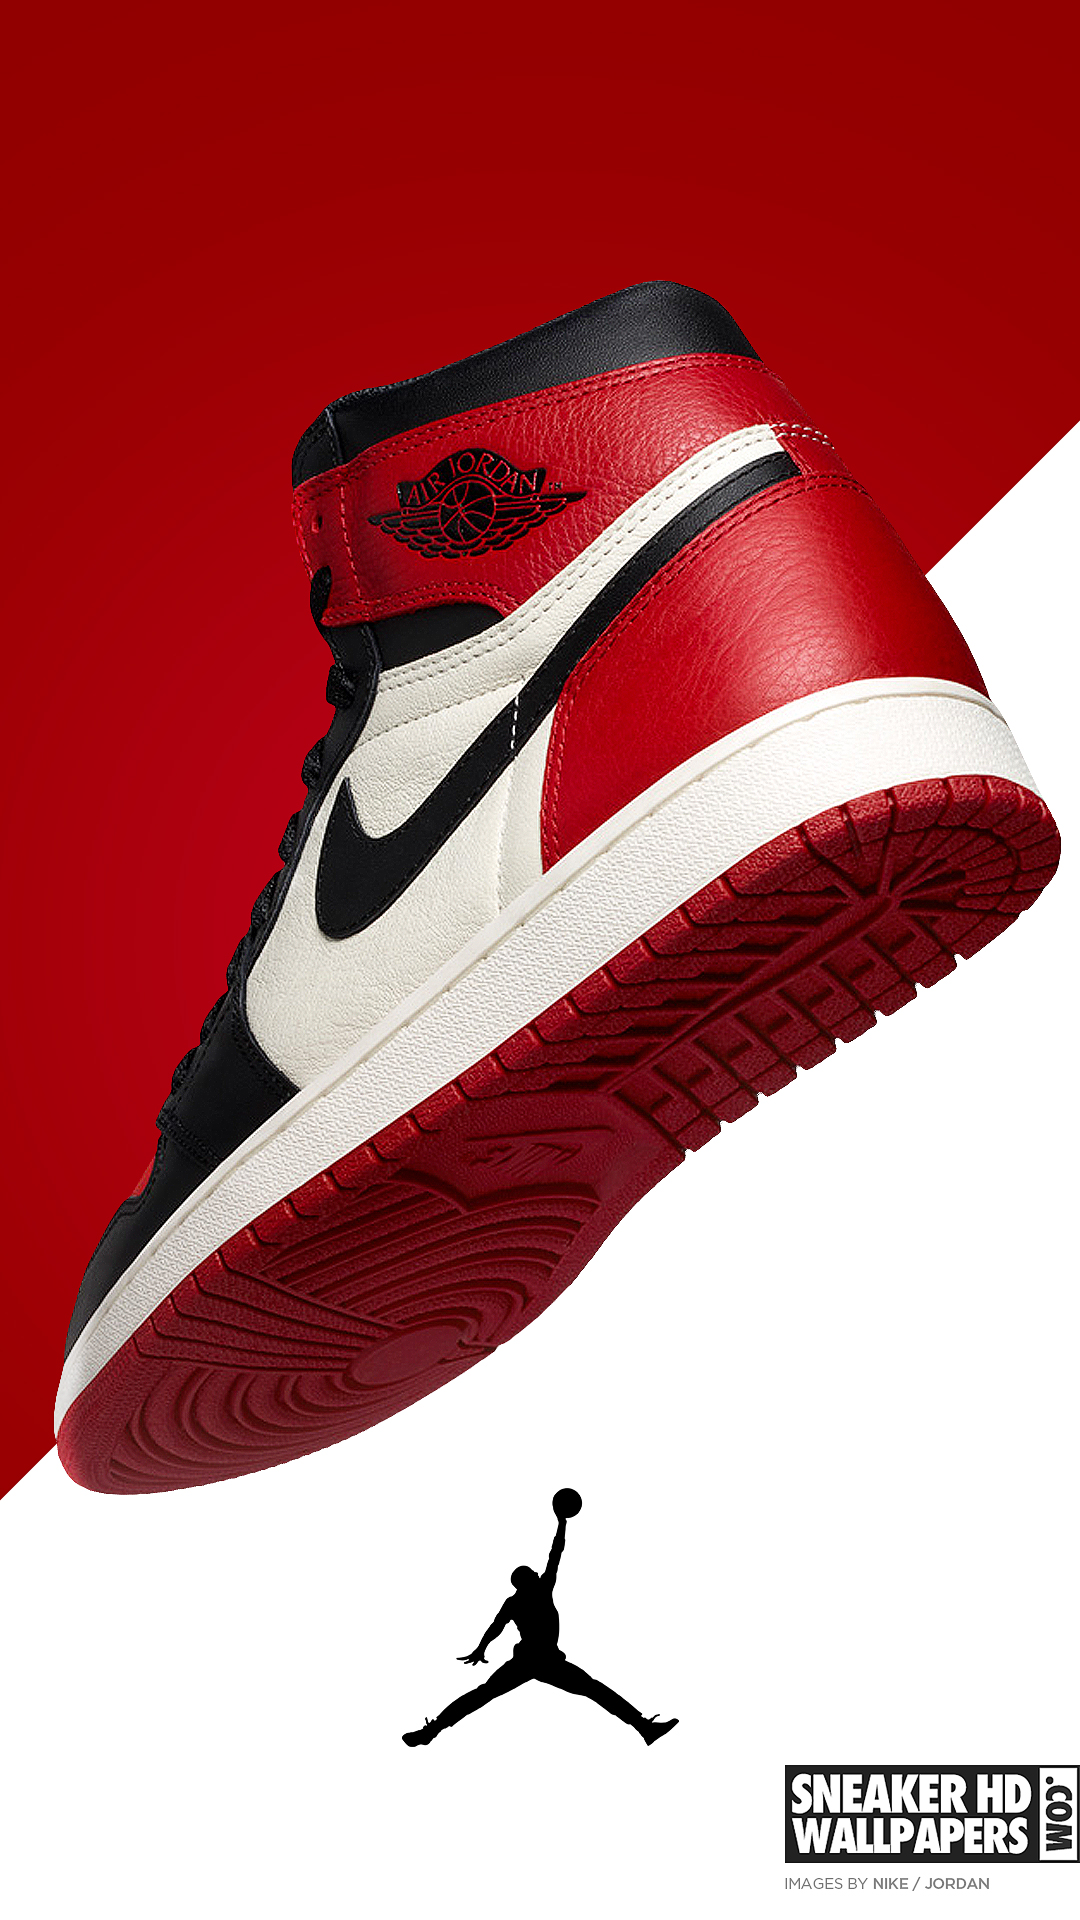 Your Favorite Sneakers In HD And